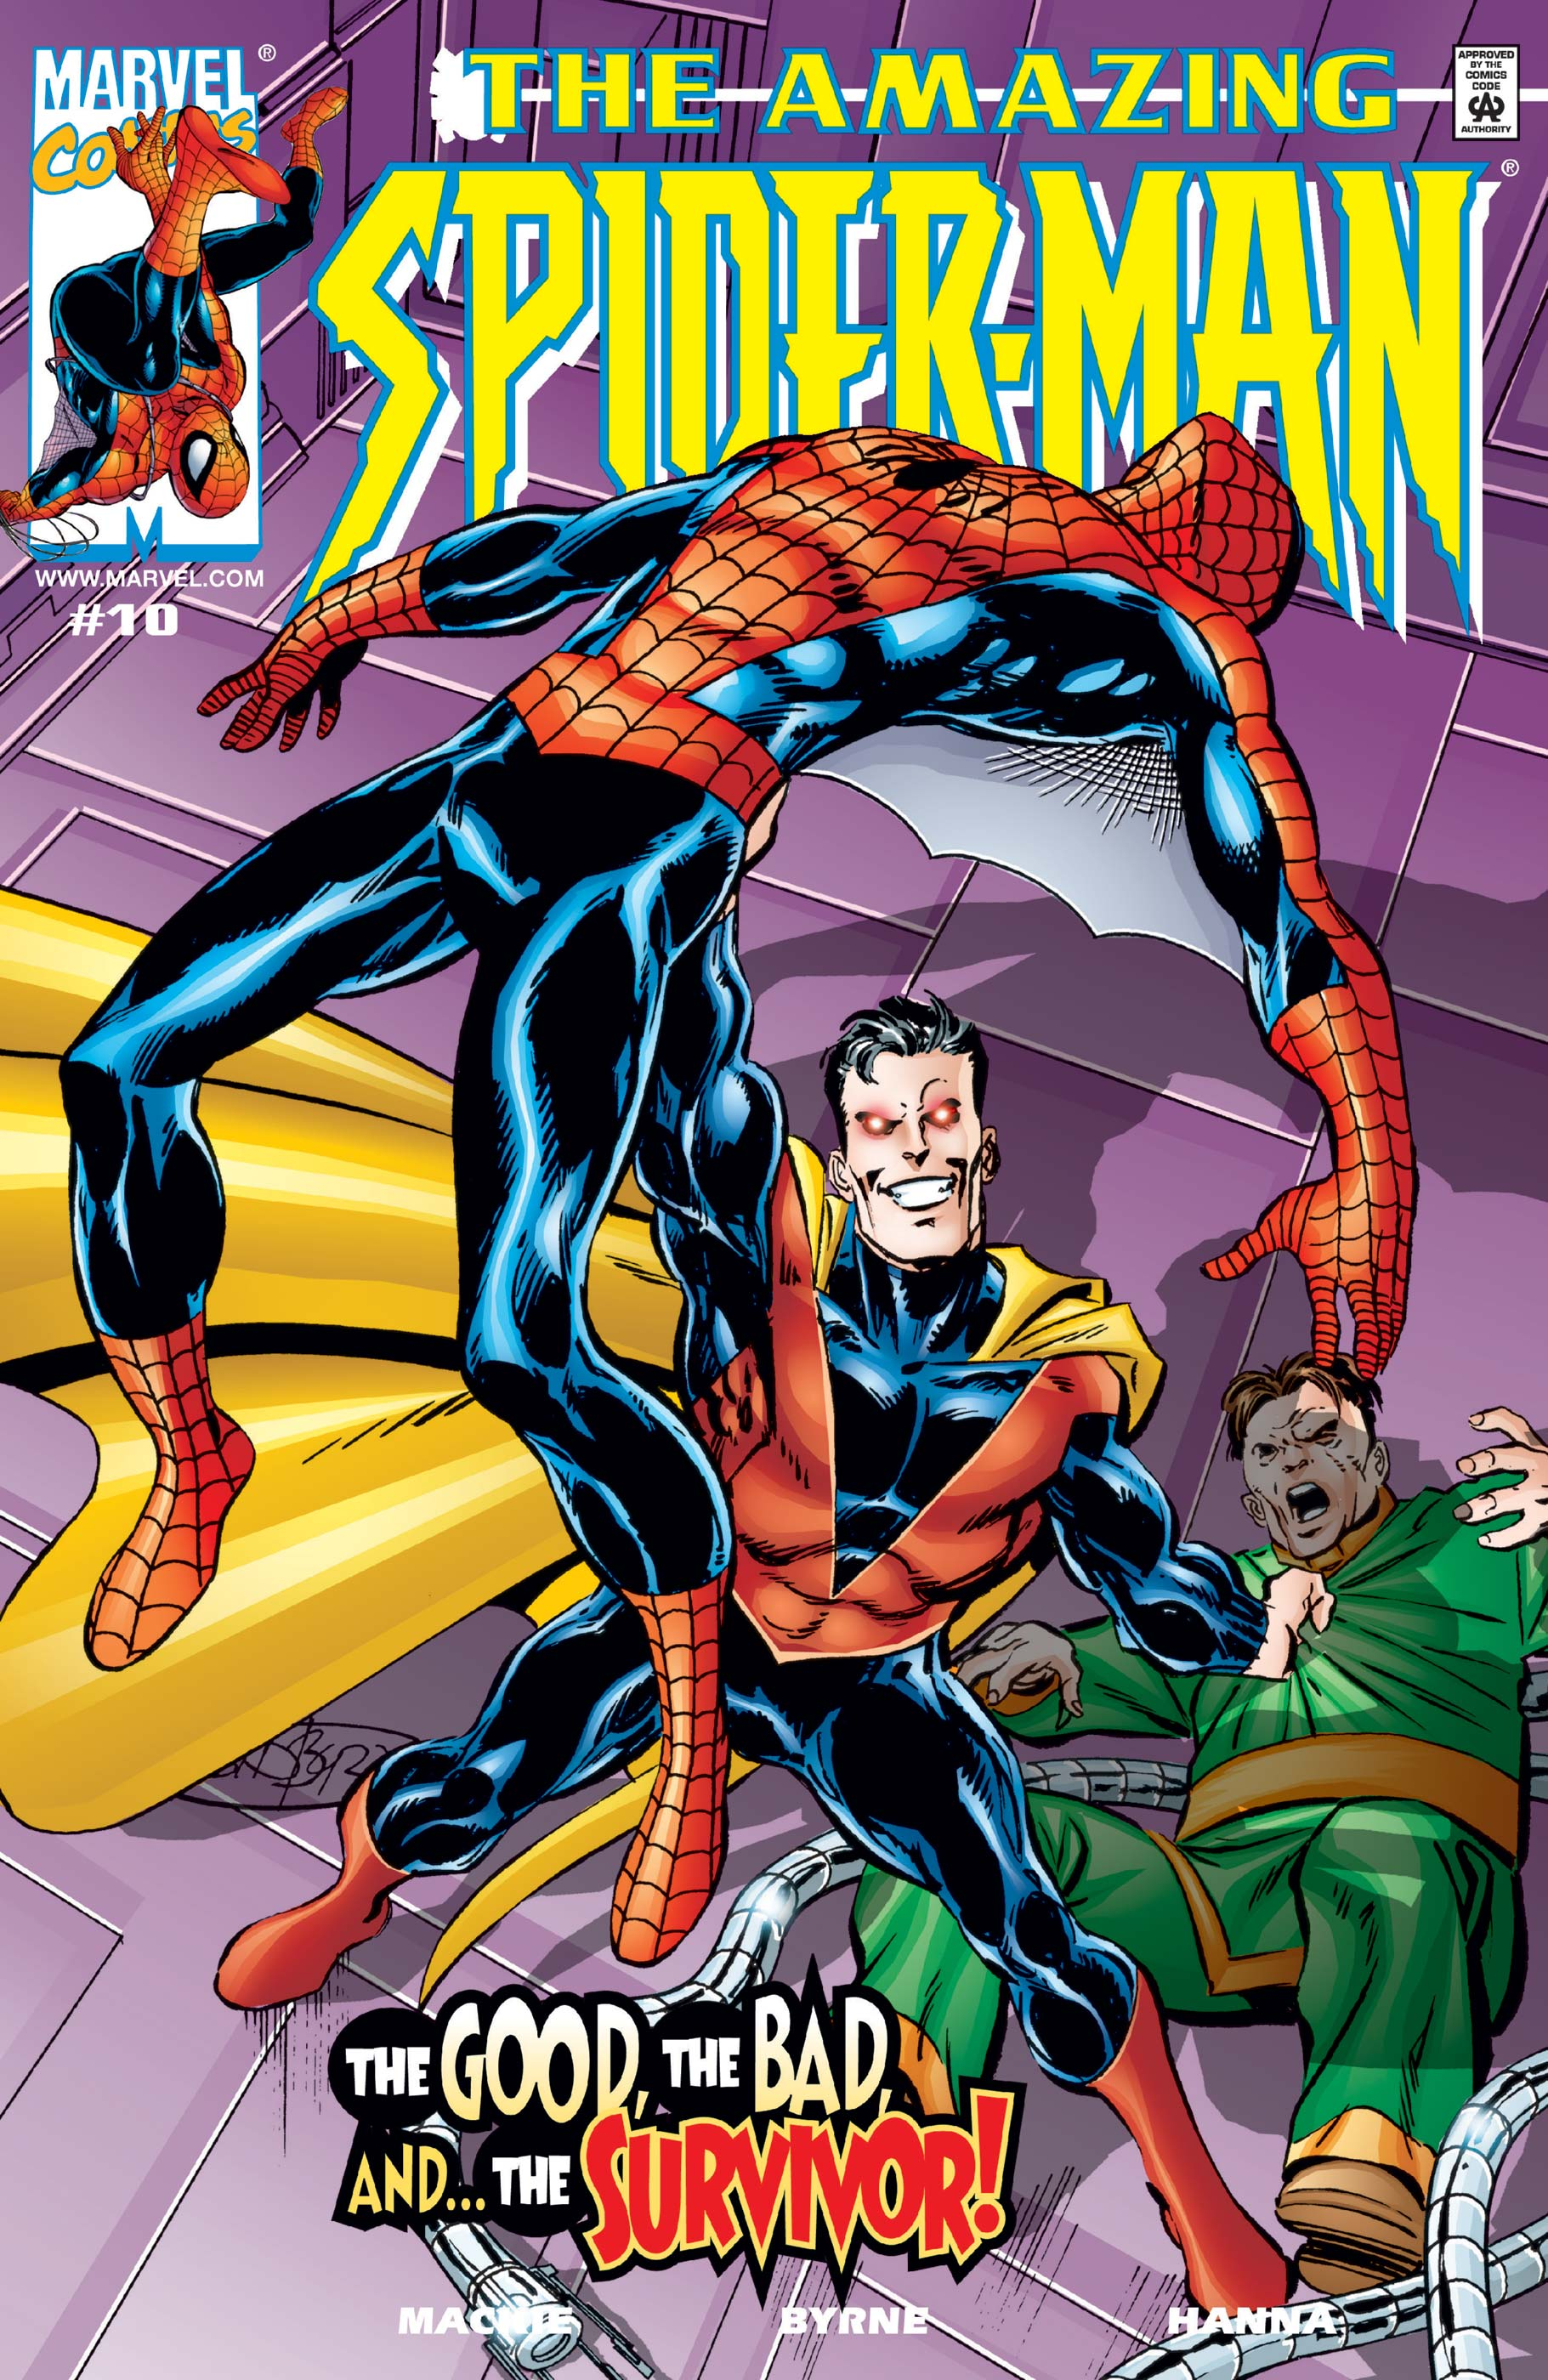 Amazing Spider-Man (1999) #10